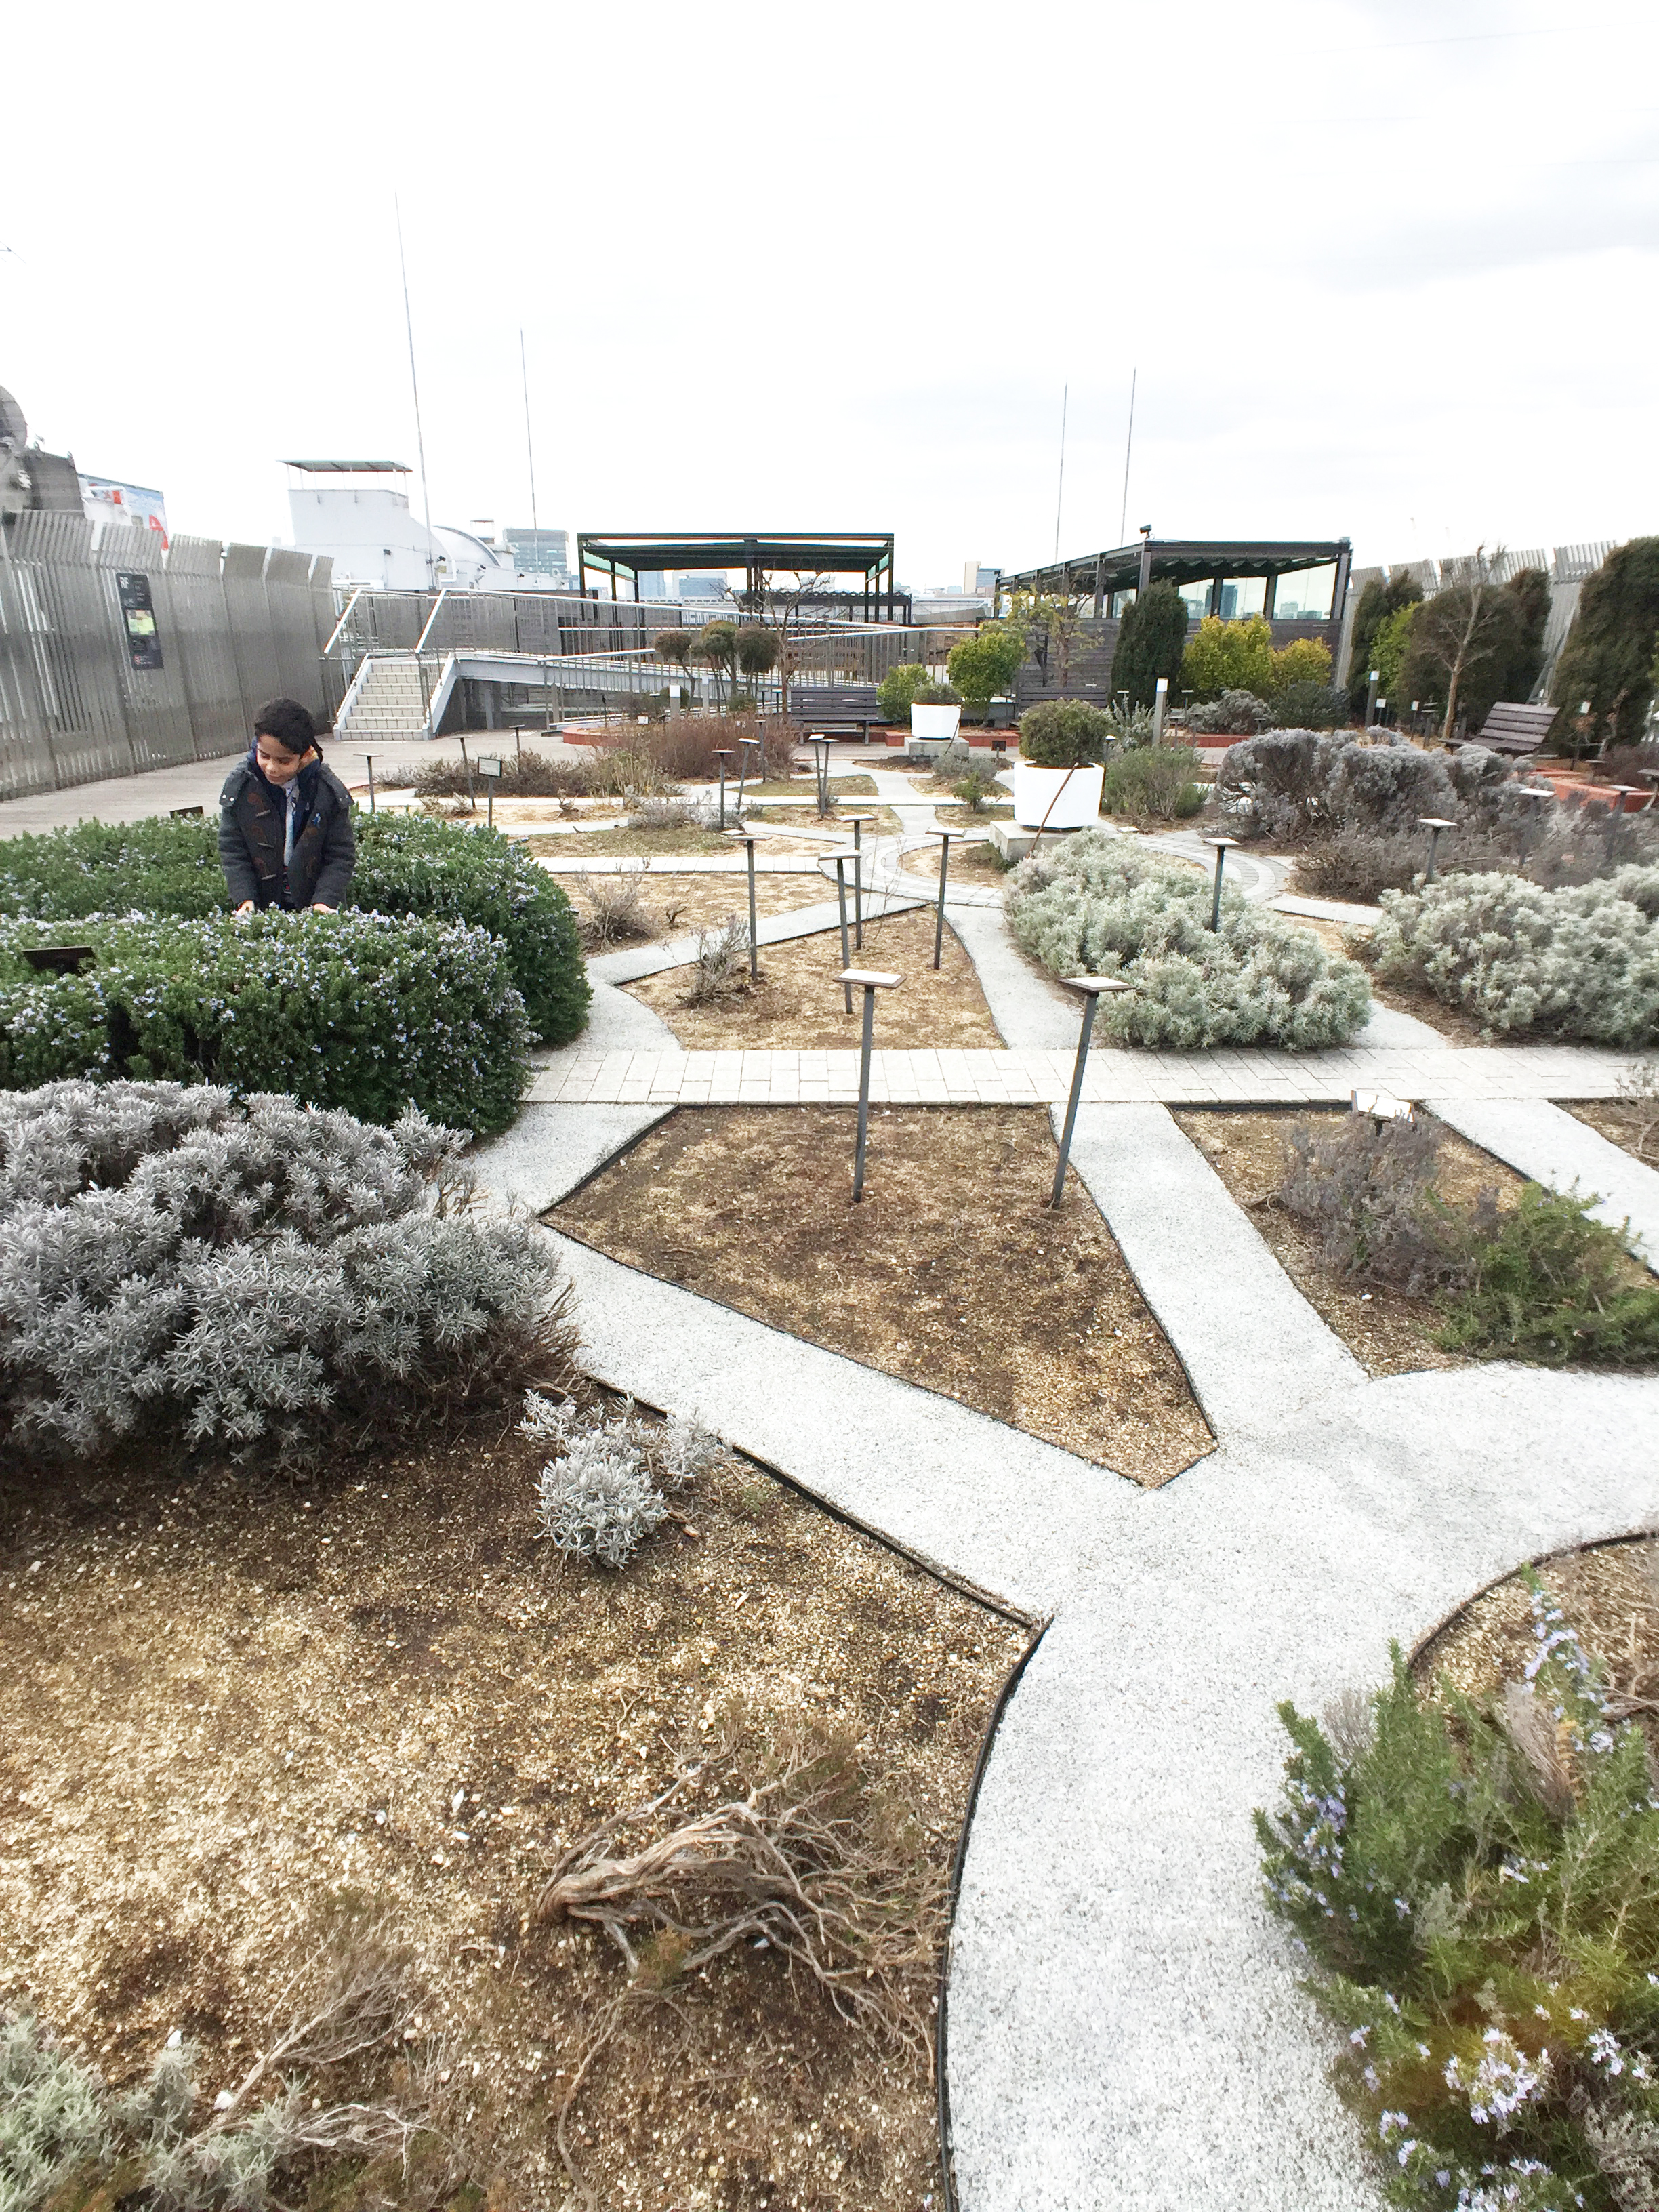 Head to the roof garden for some fresh air!